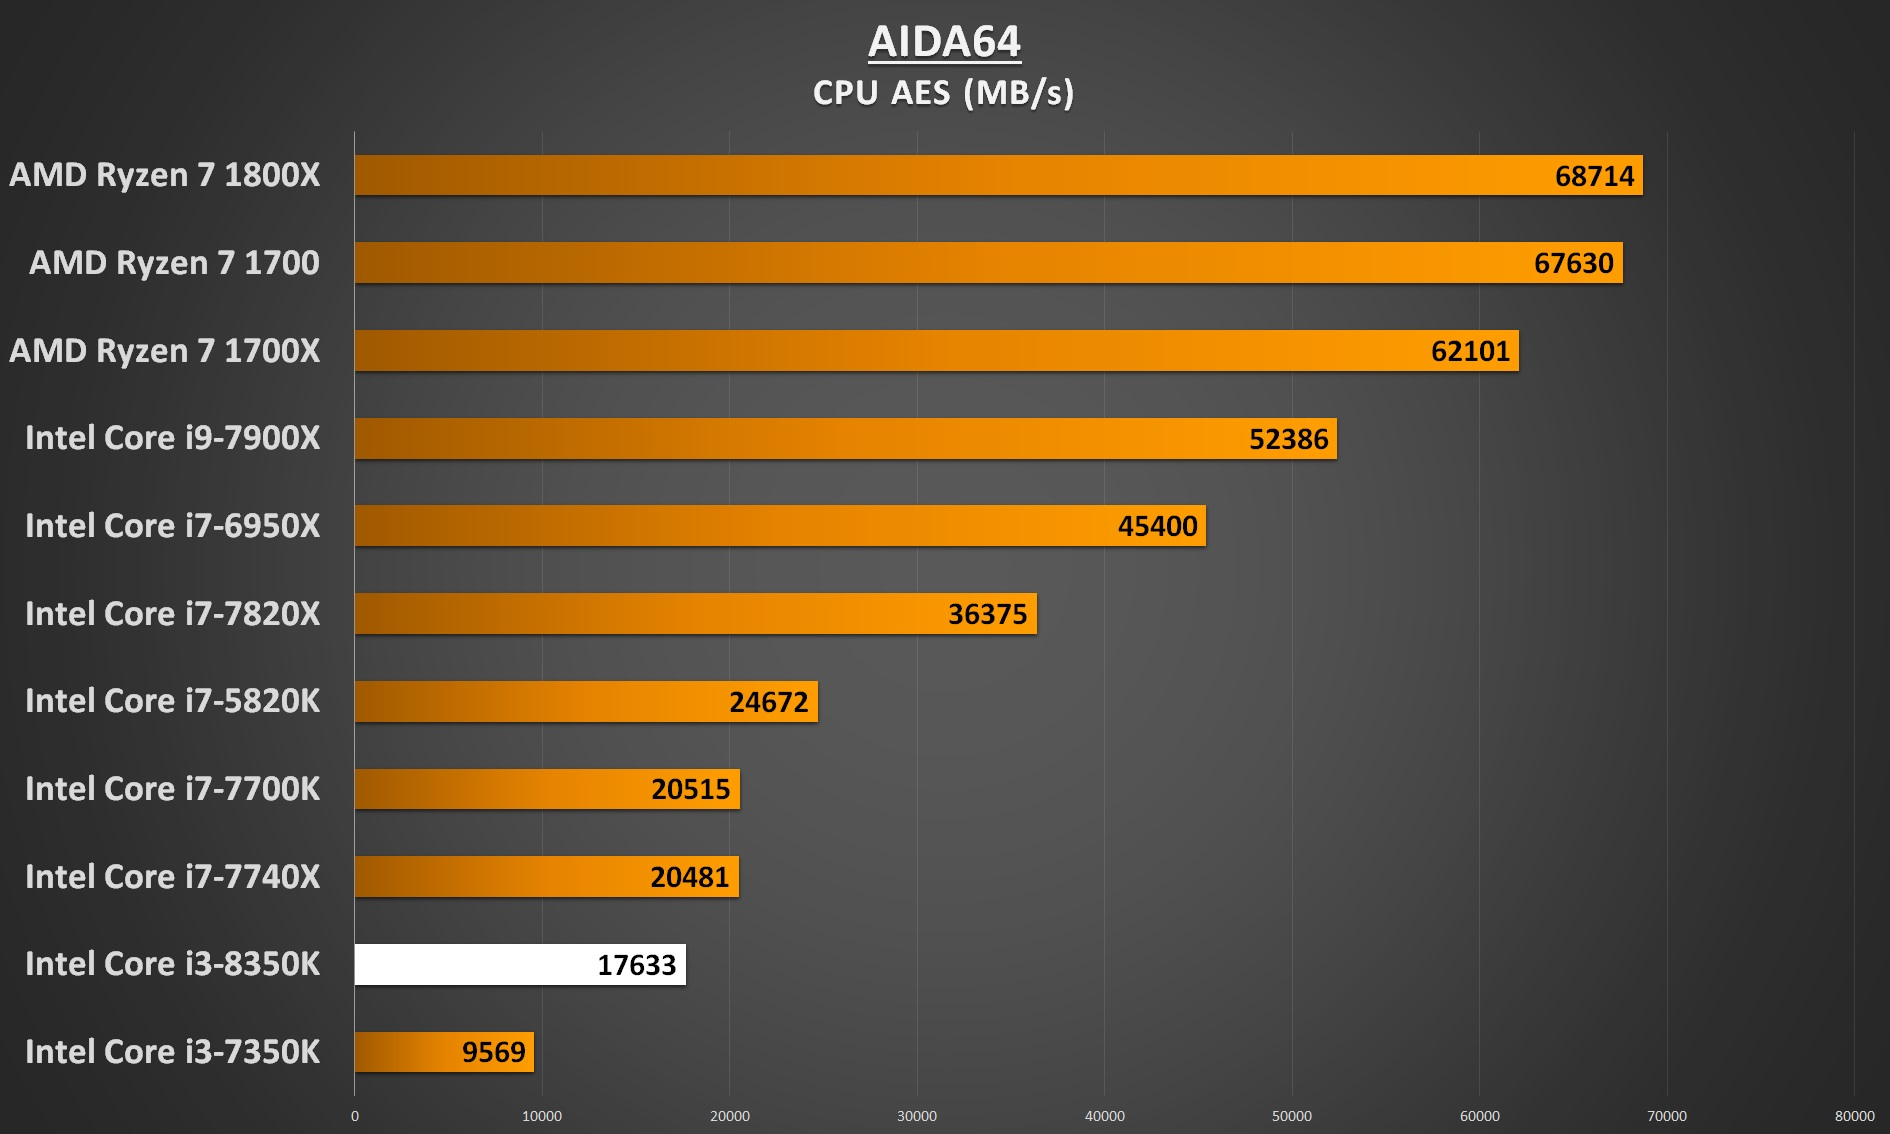 Intel Core i3-8350 Performance - AIDA64 CPU AES